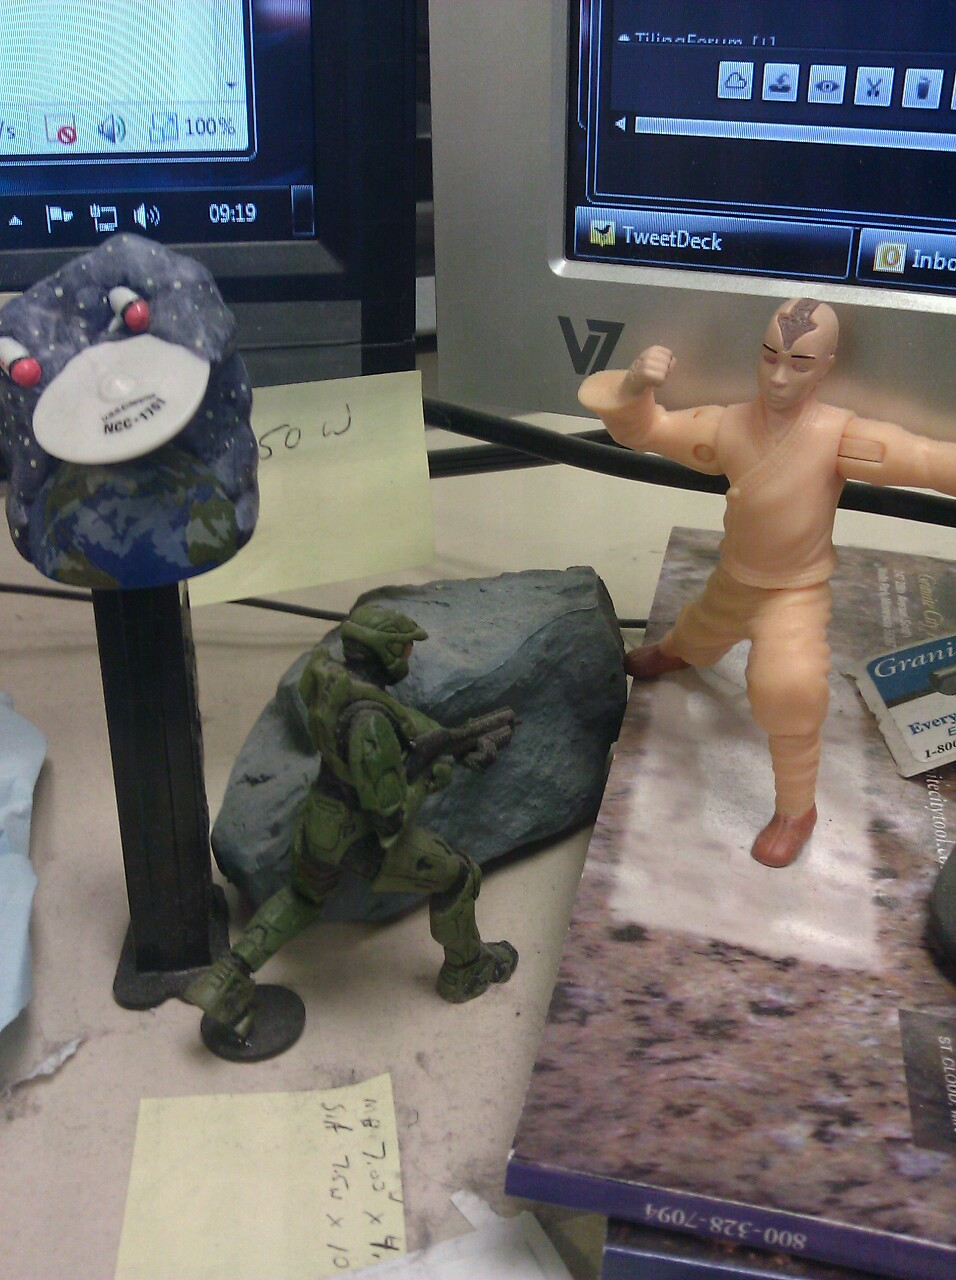 A few of my desk item's that keep me company.